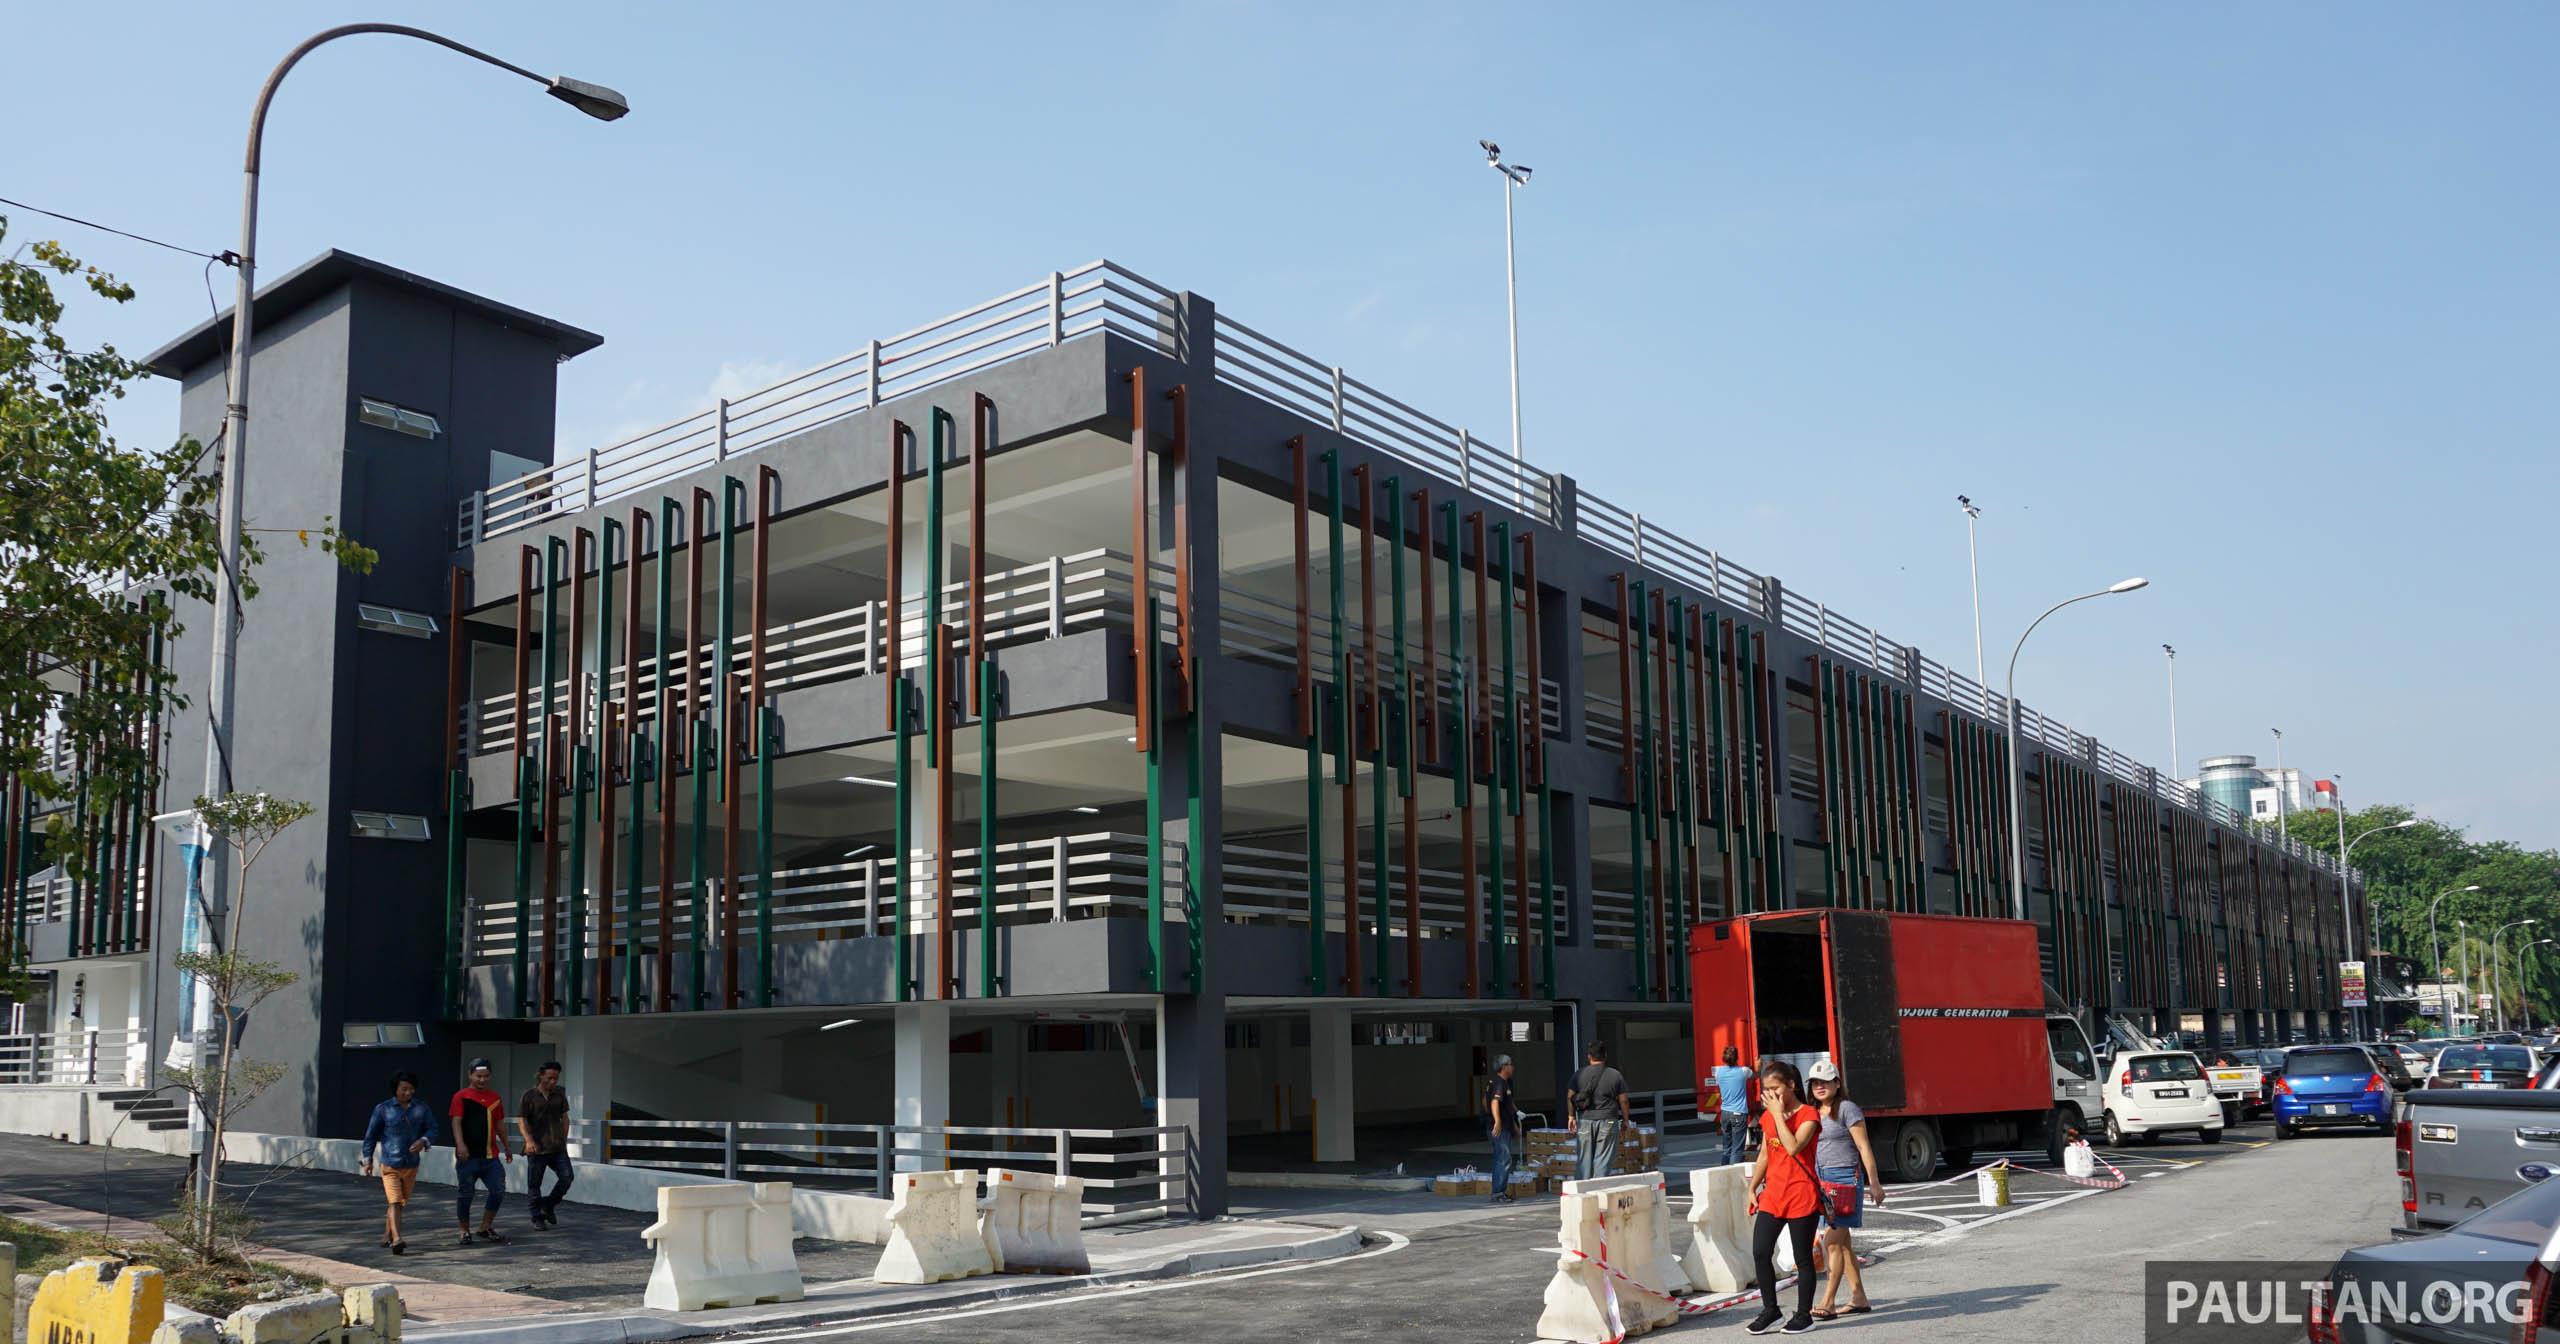 S2 Car Parking New Multi Storey Car Park In Ss15 To Open On July 24